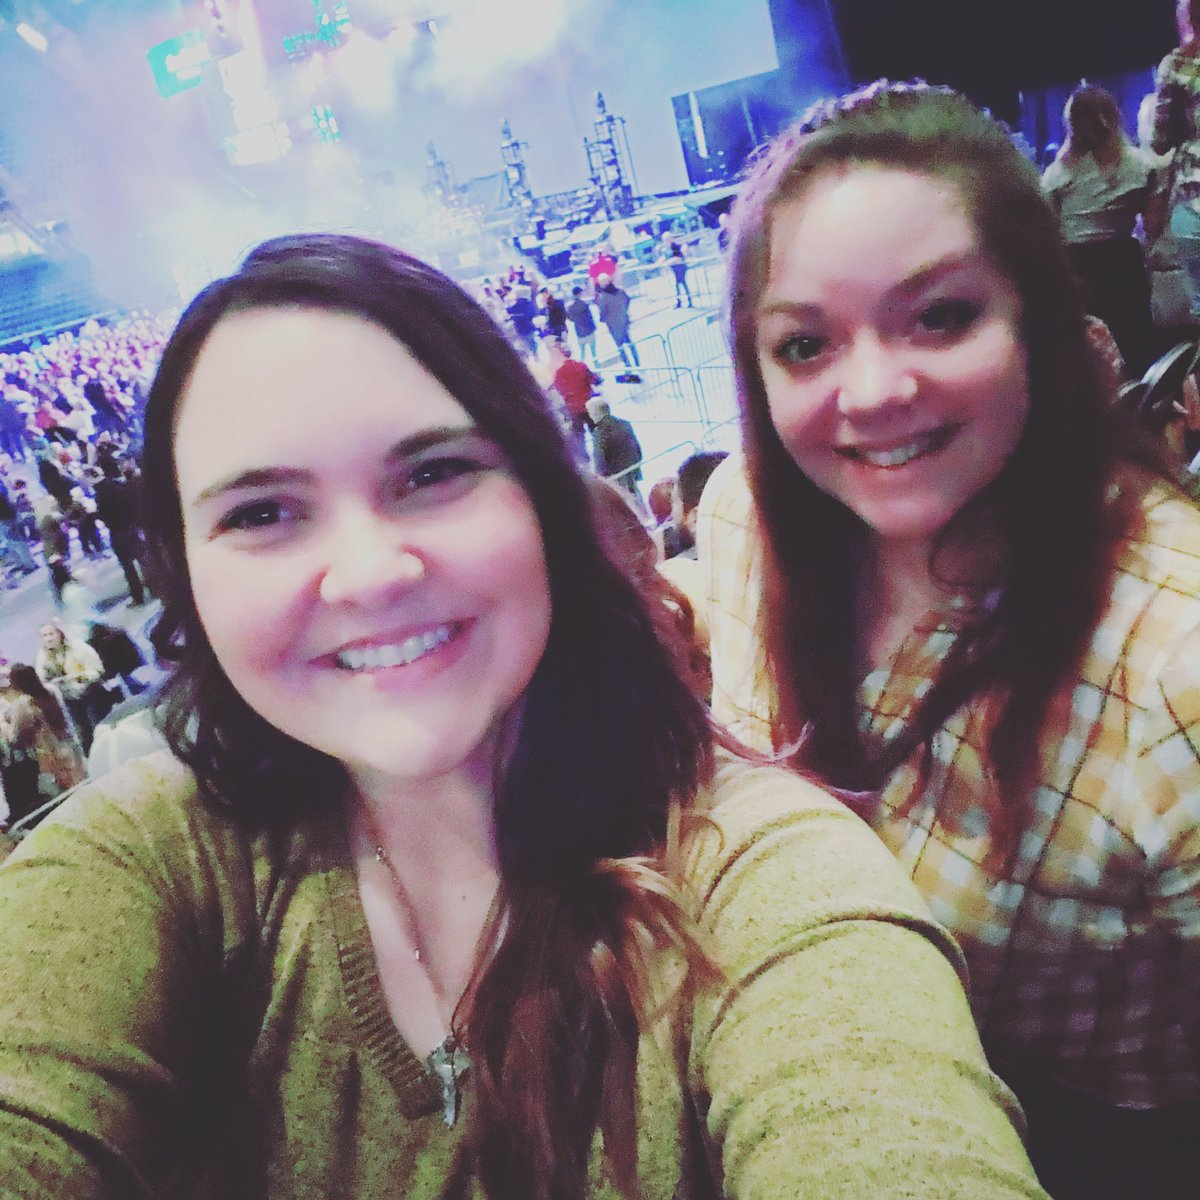 Hey let's go to a concert and get tickets 4 hours before. @RileyGreenMusic @MorganWallen and Jason Aldean all put on an awesome show! Also, I am that girl Riley #girlsnightout #spontaneousadventures #therewasthisgirl #shescountrypic.twitter.com/B5BbVIgTwZ